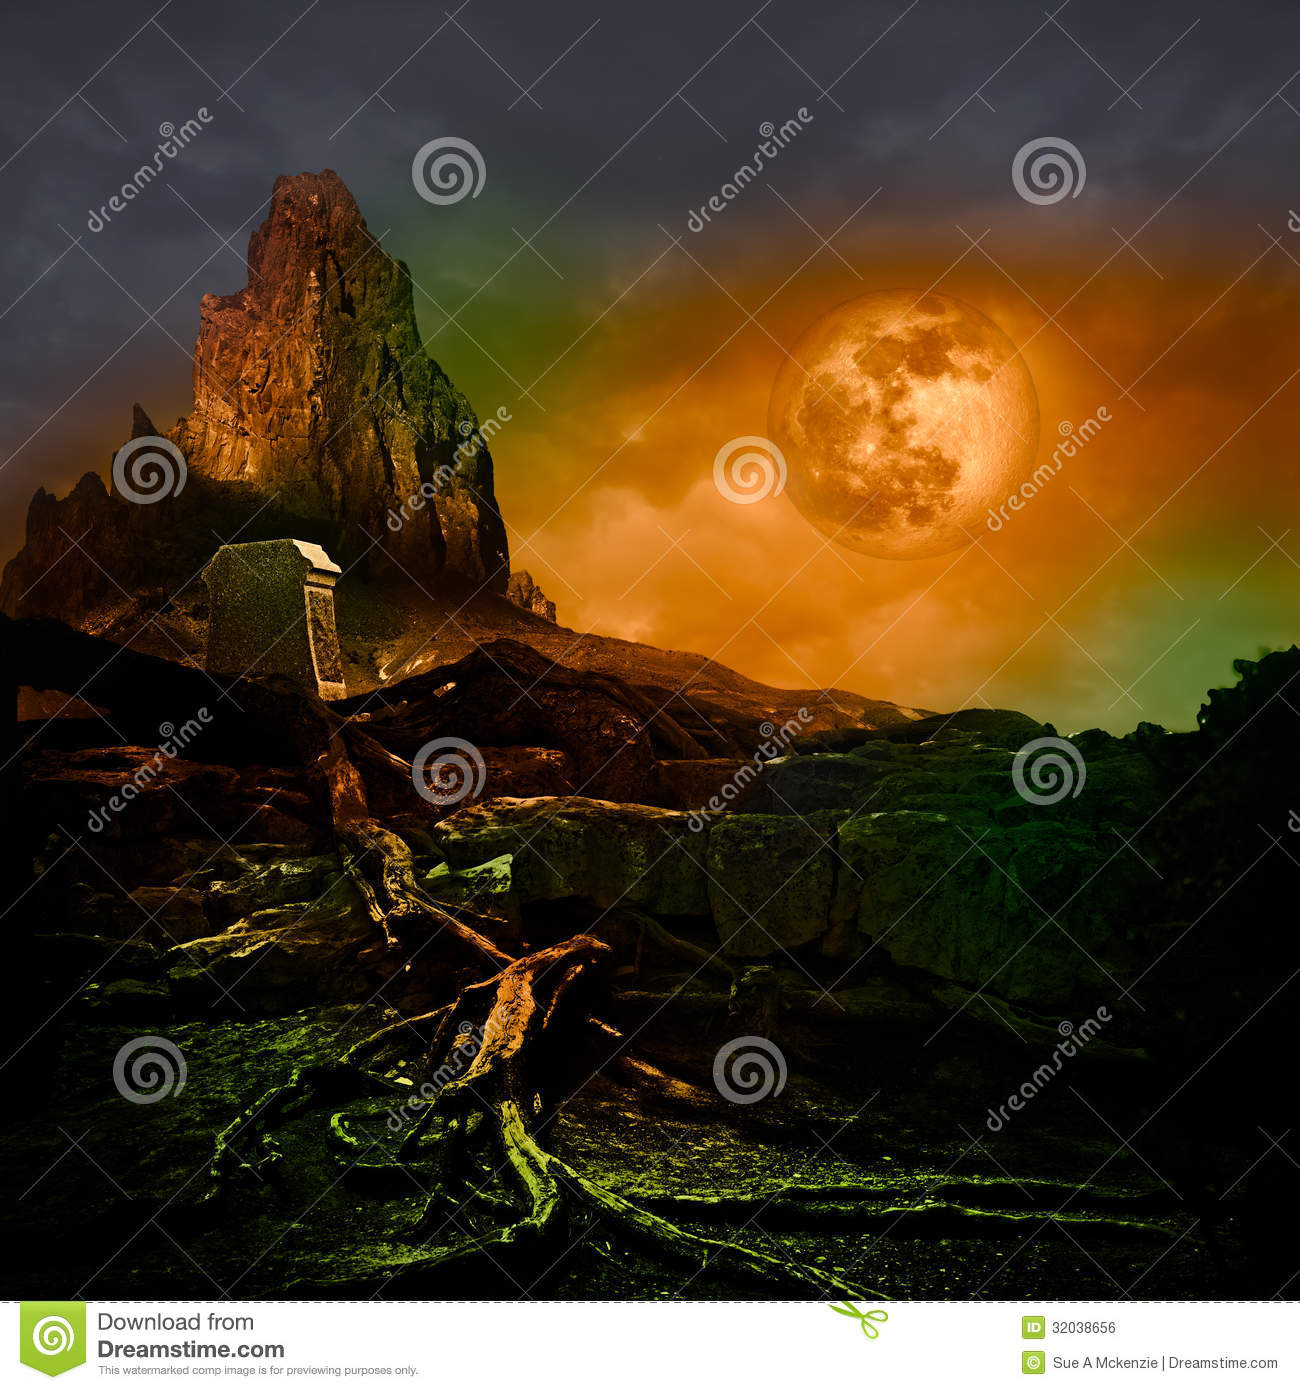 Halloween Design Stock Photos - Image: 21392133